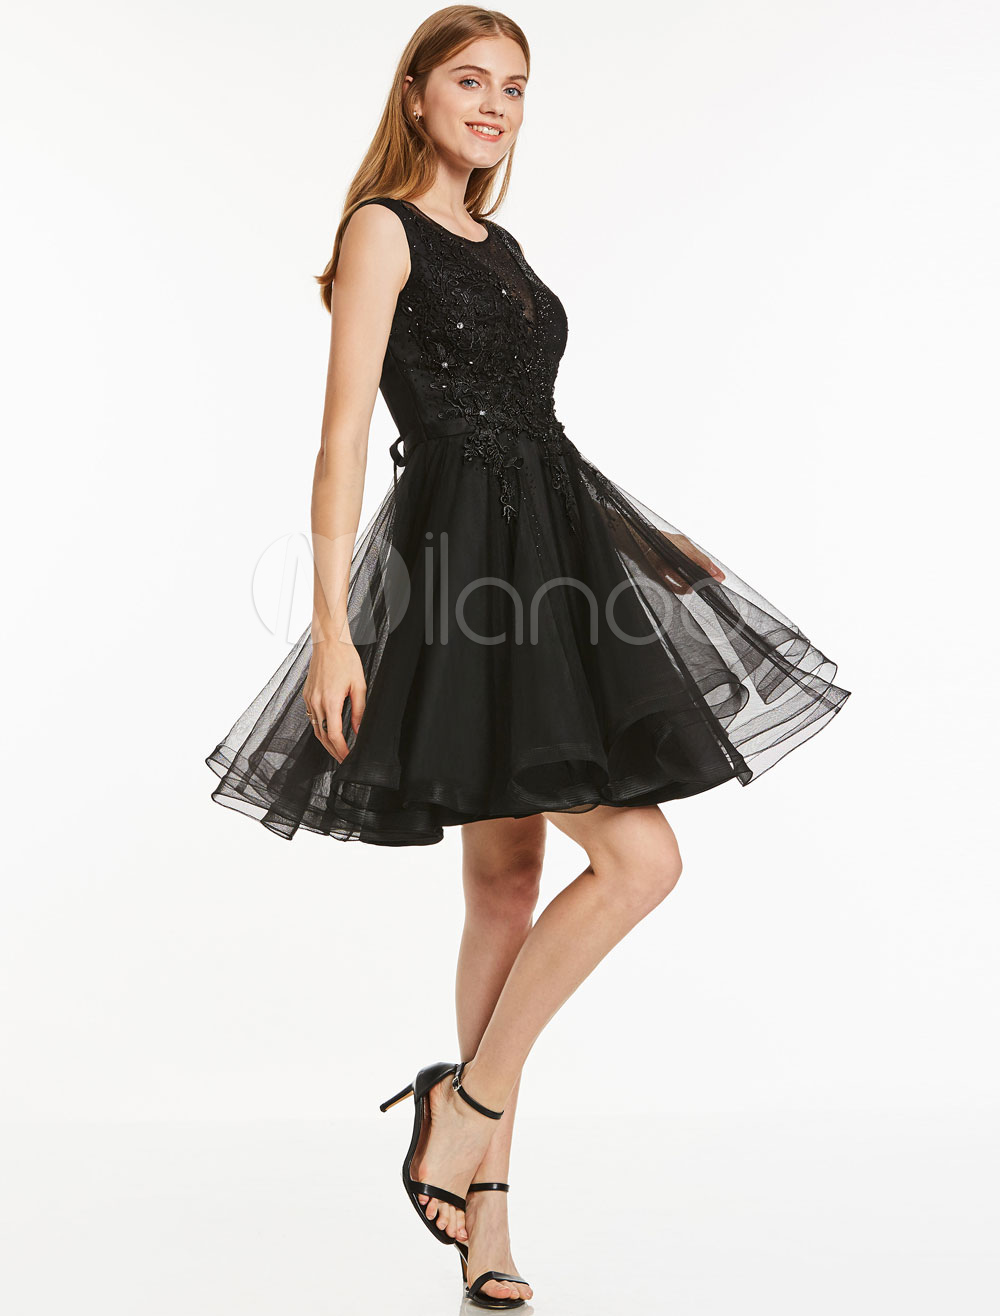 Short Prom Dress Tulle Little Black Dress Lace Applique Beaded Sleeveless Graduation Dress